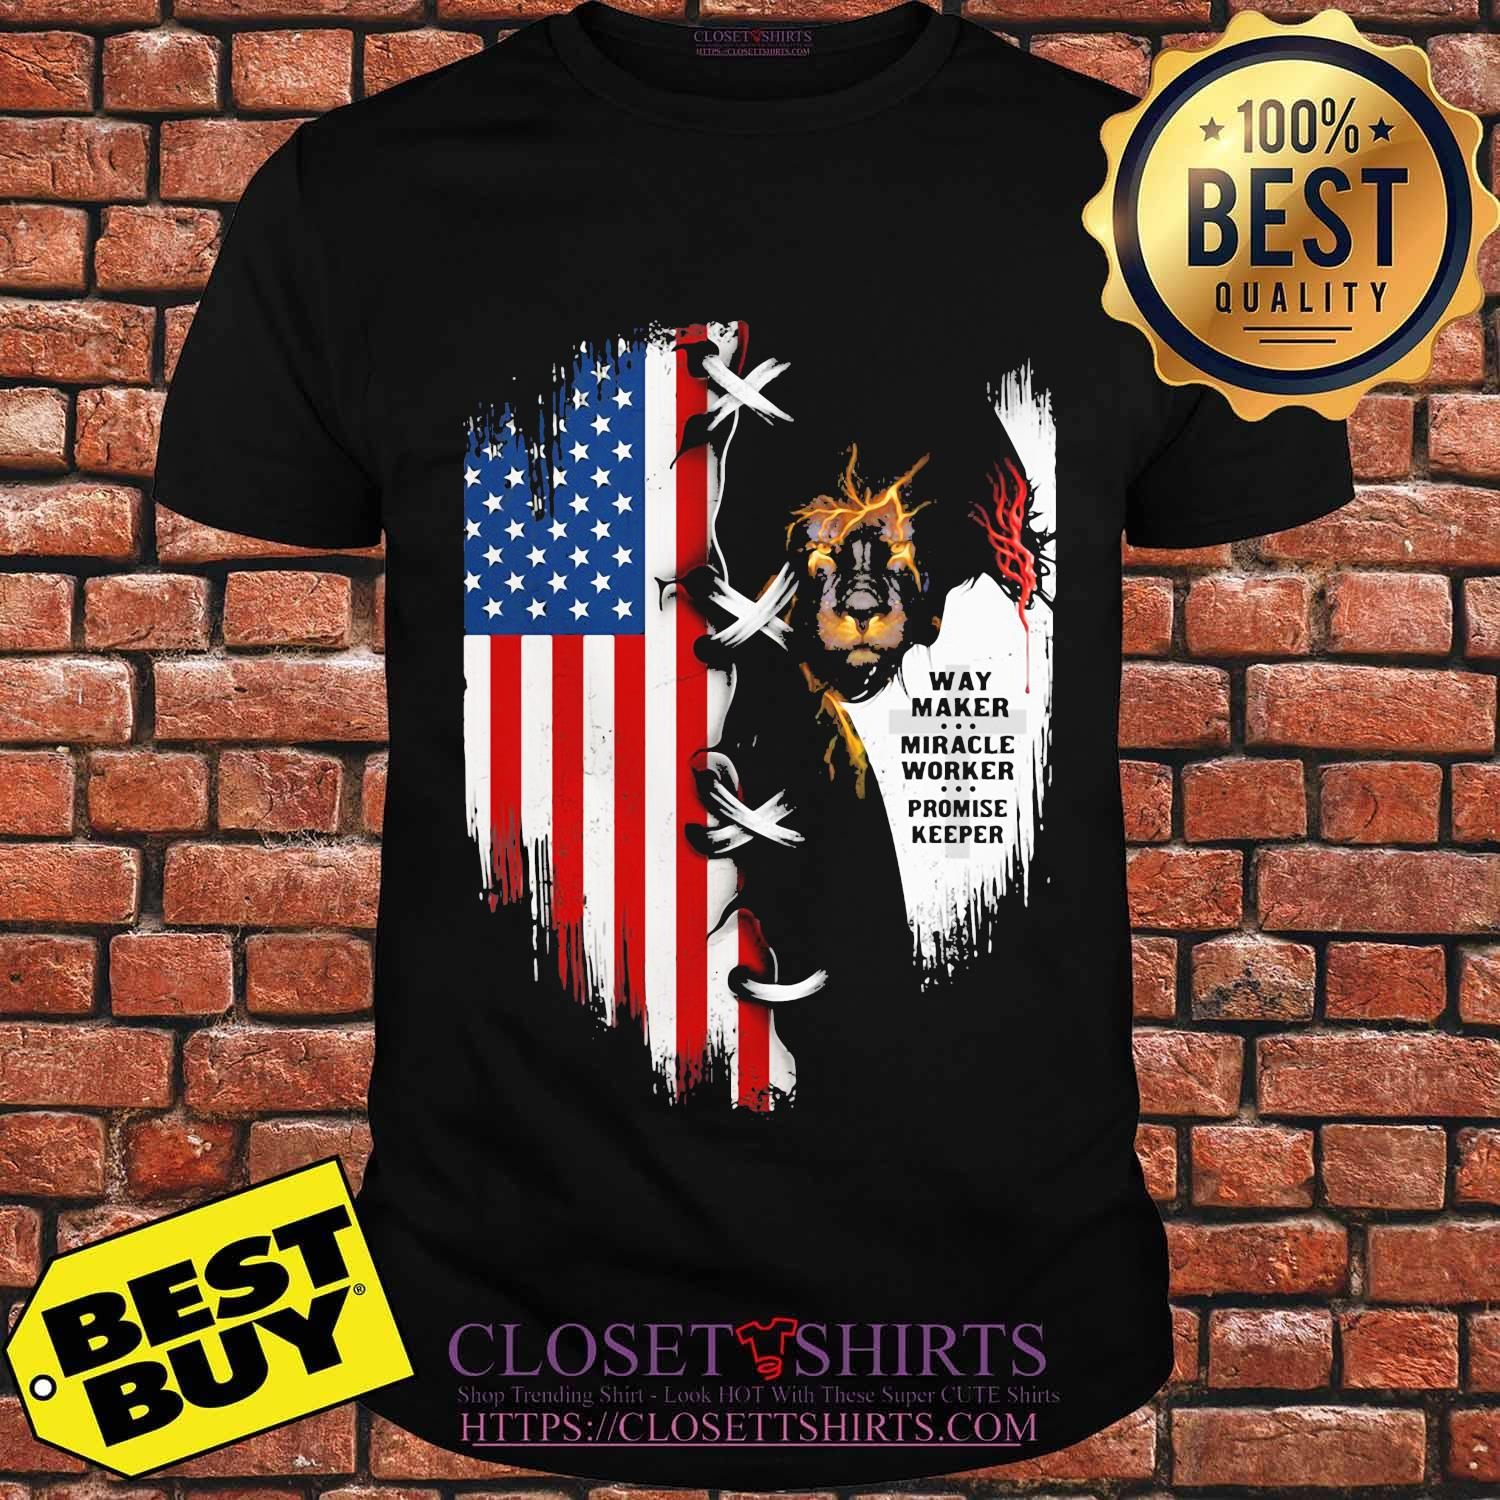 Way maker miracle worker promise keeper American flag veteran Independence day shirt